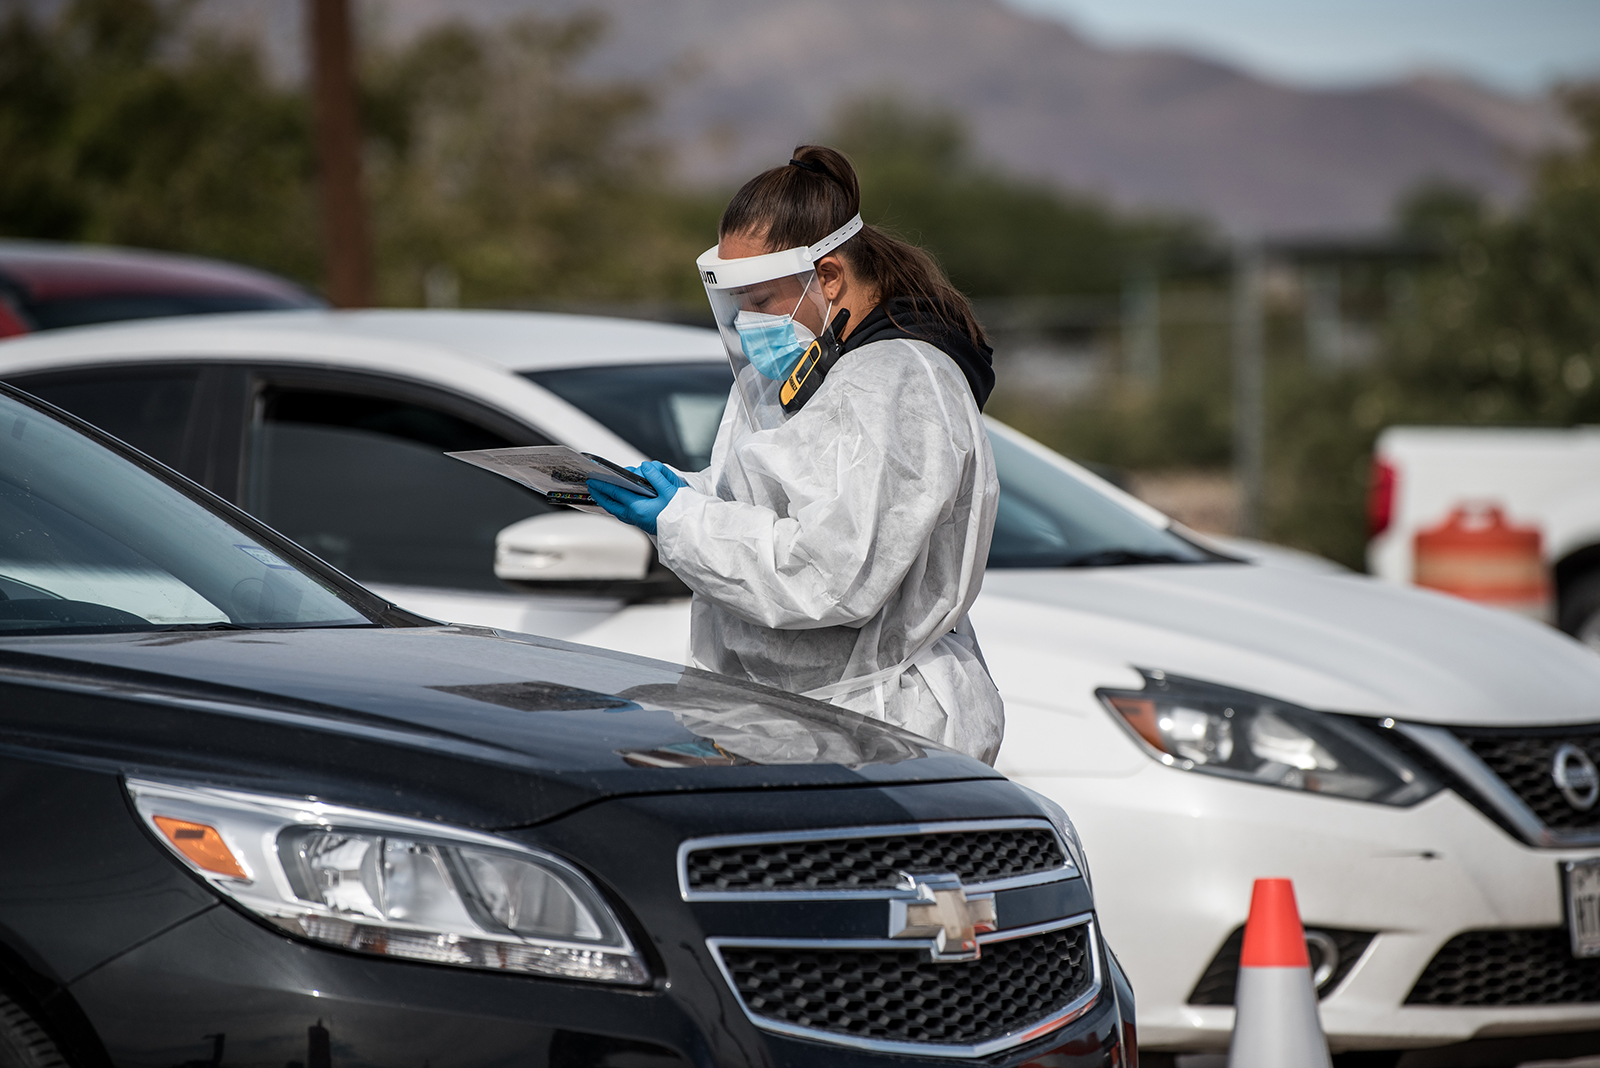 An attendant talks to a person waiting in their car at a Covid-19 testing site at Ascarate Park in El Paso, Texas, on October 31.